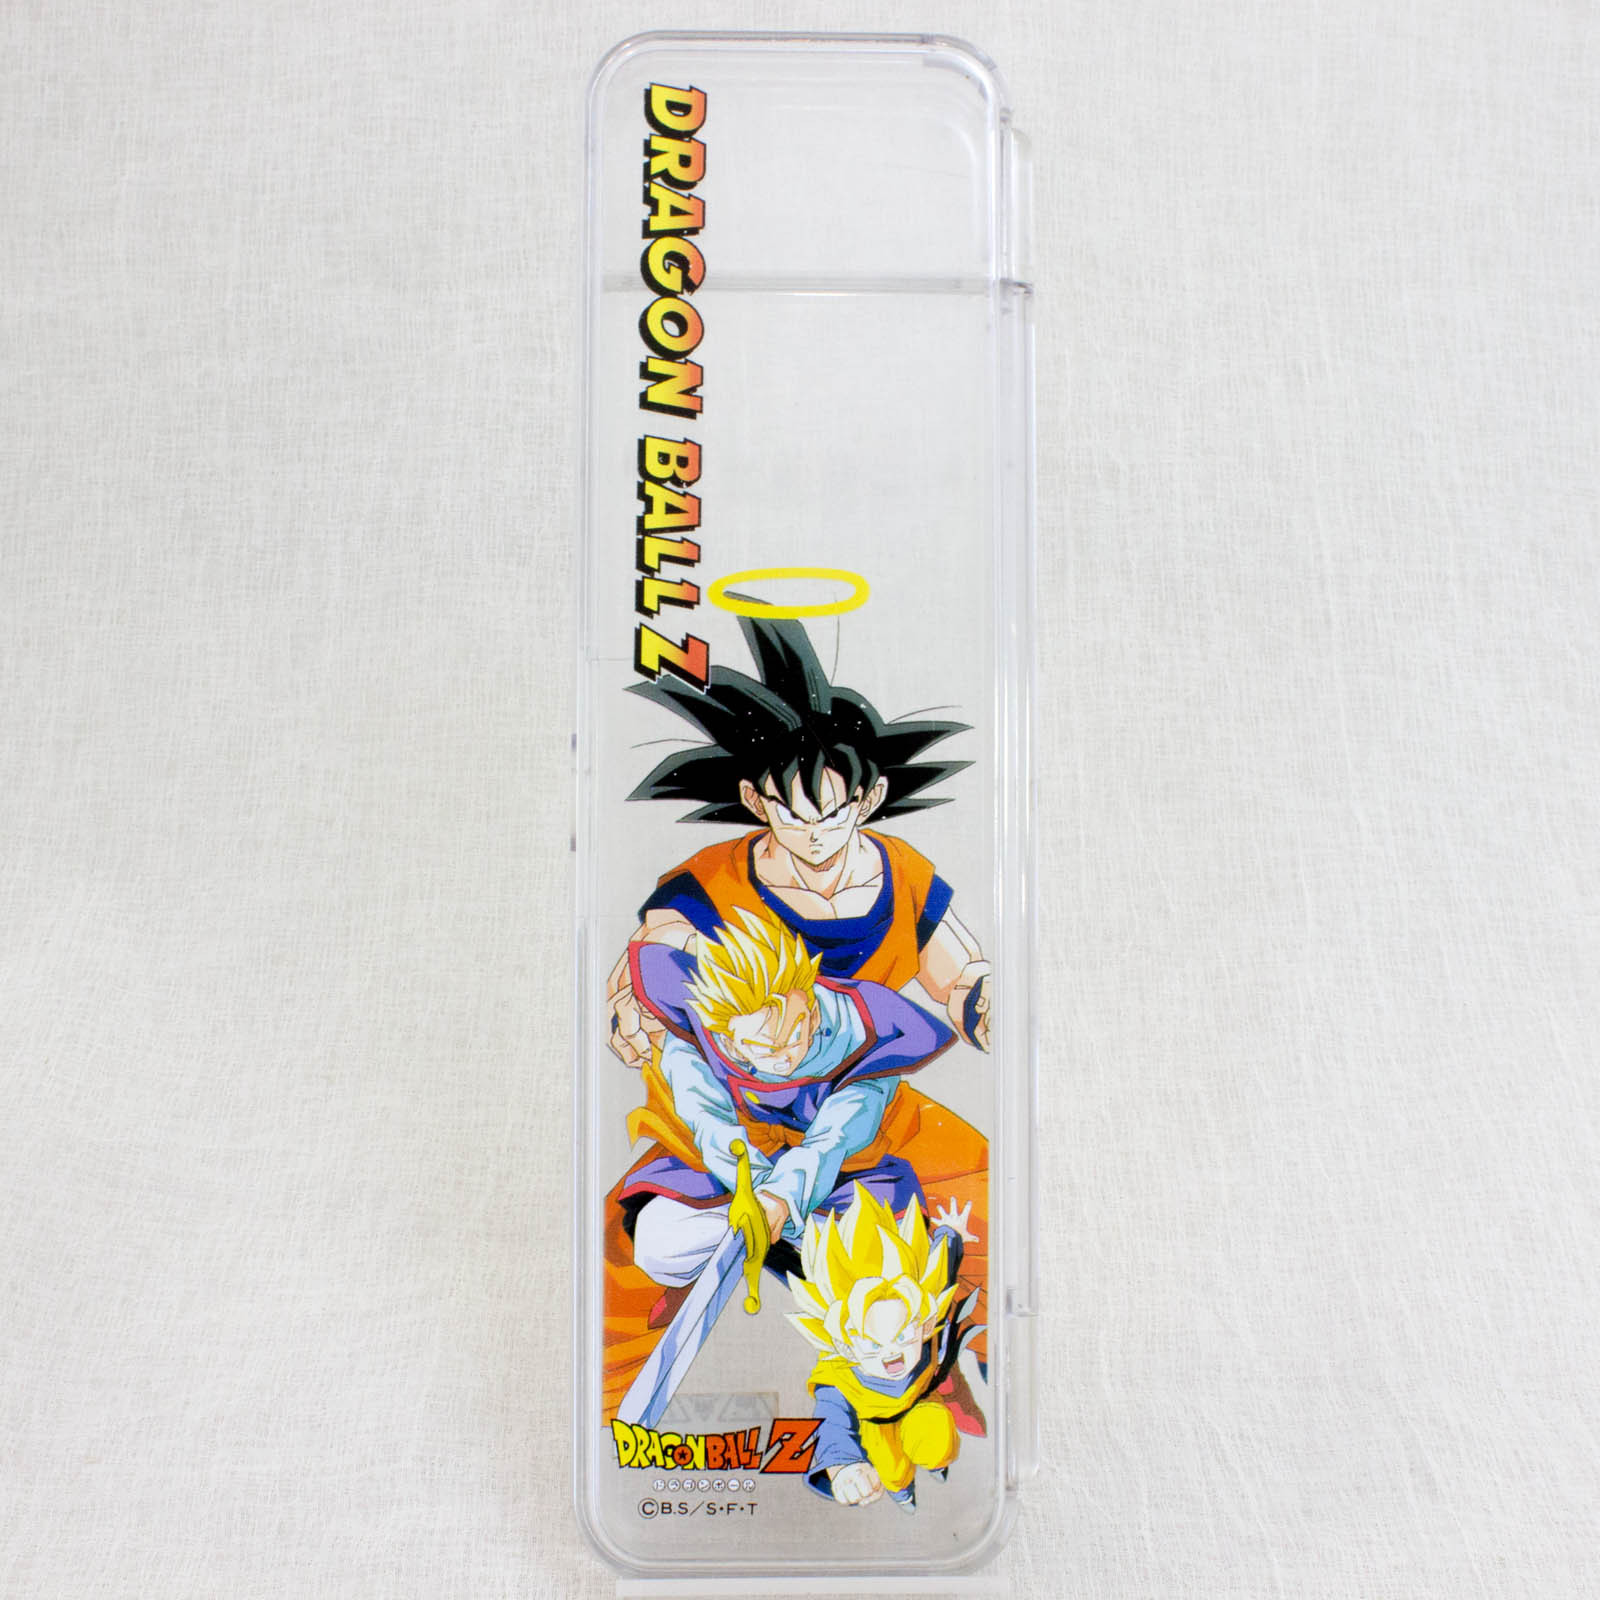 Dragon Ball Z Gokou Gohan Plastic Pen Case JAPAN ANIME MANGA